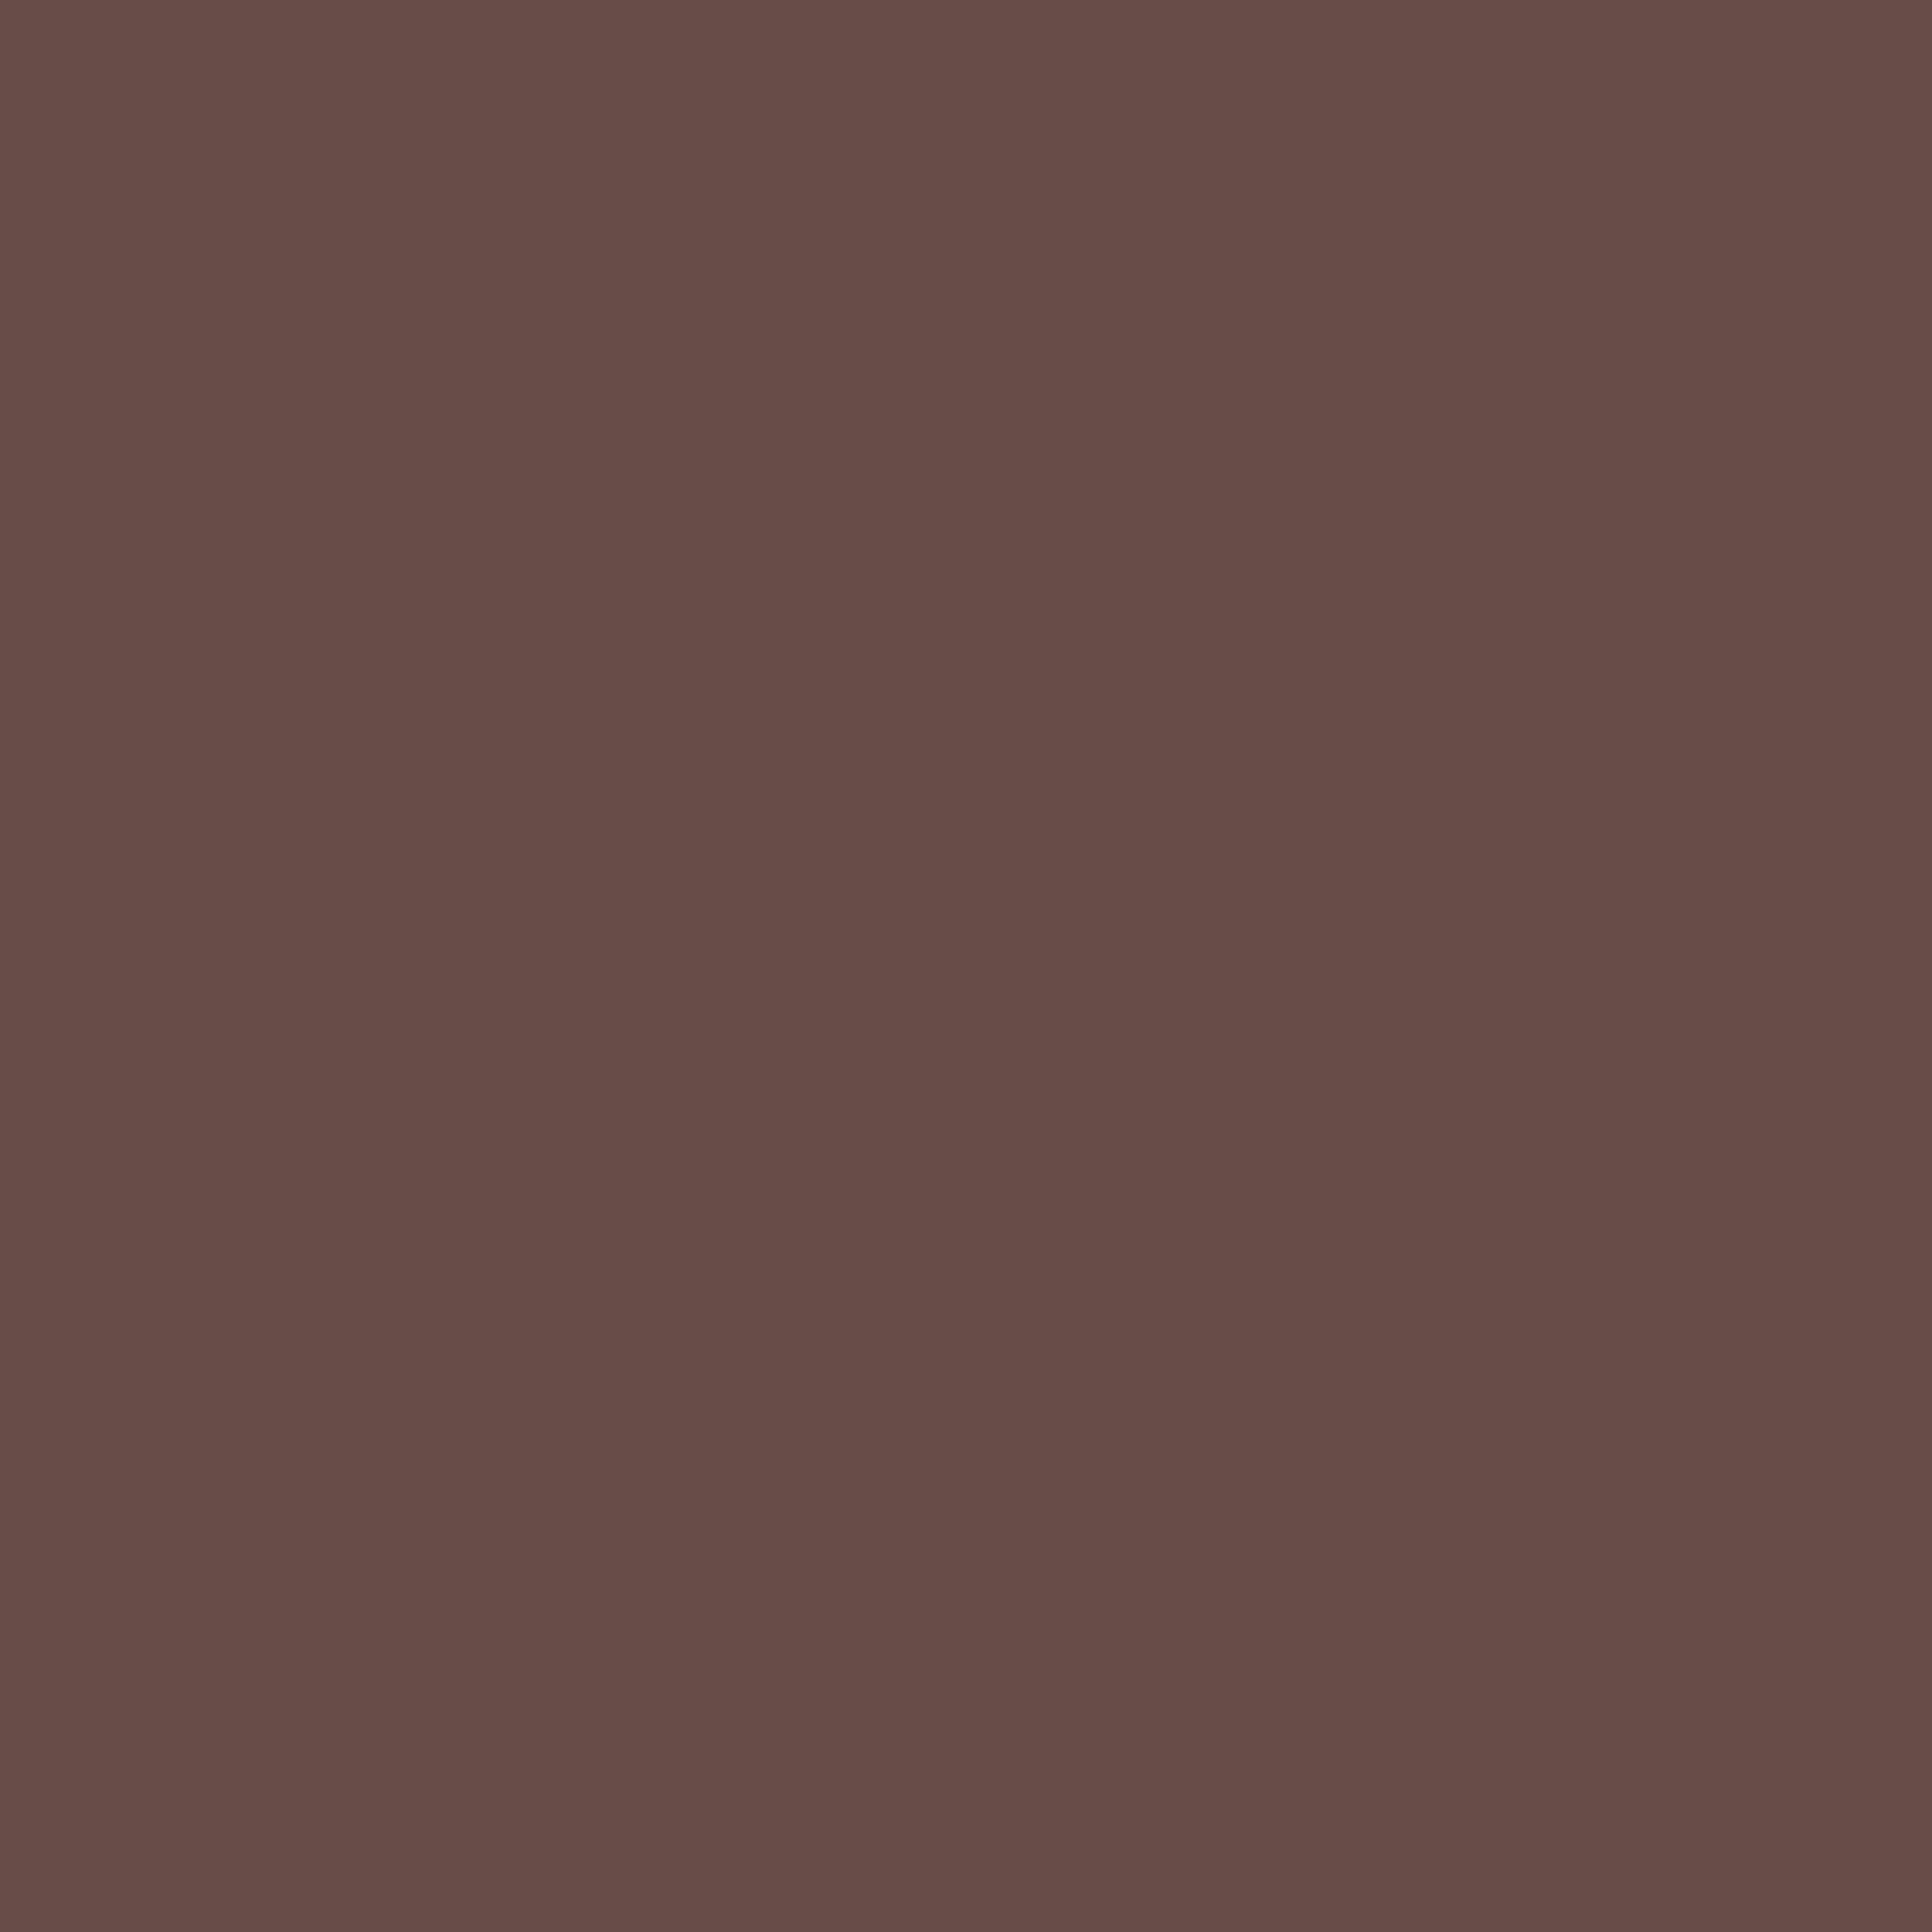 2048x2048 Medium Taupe Solid Color Background